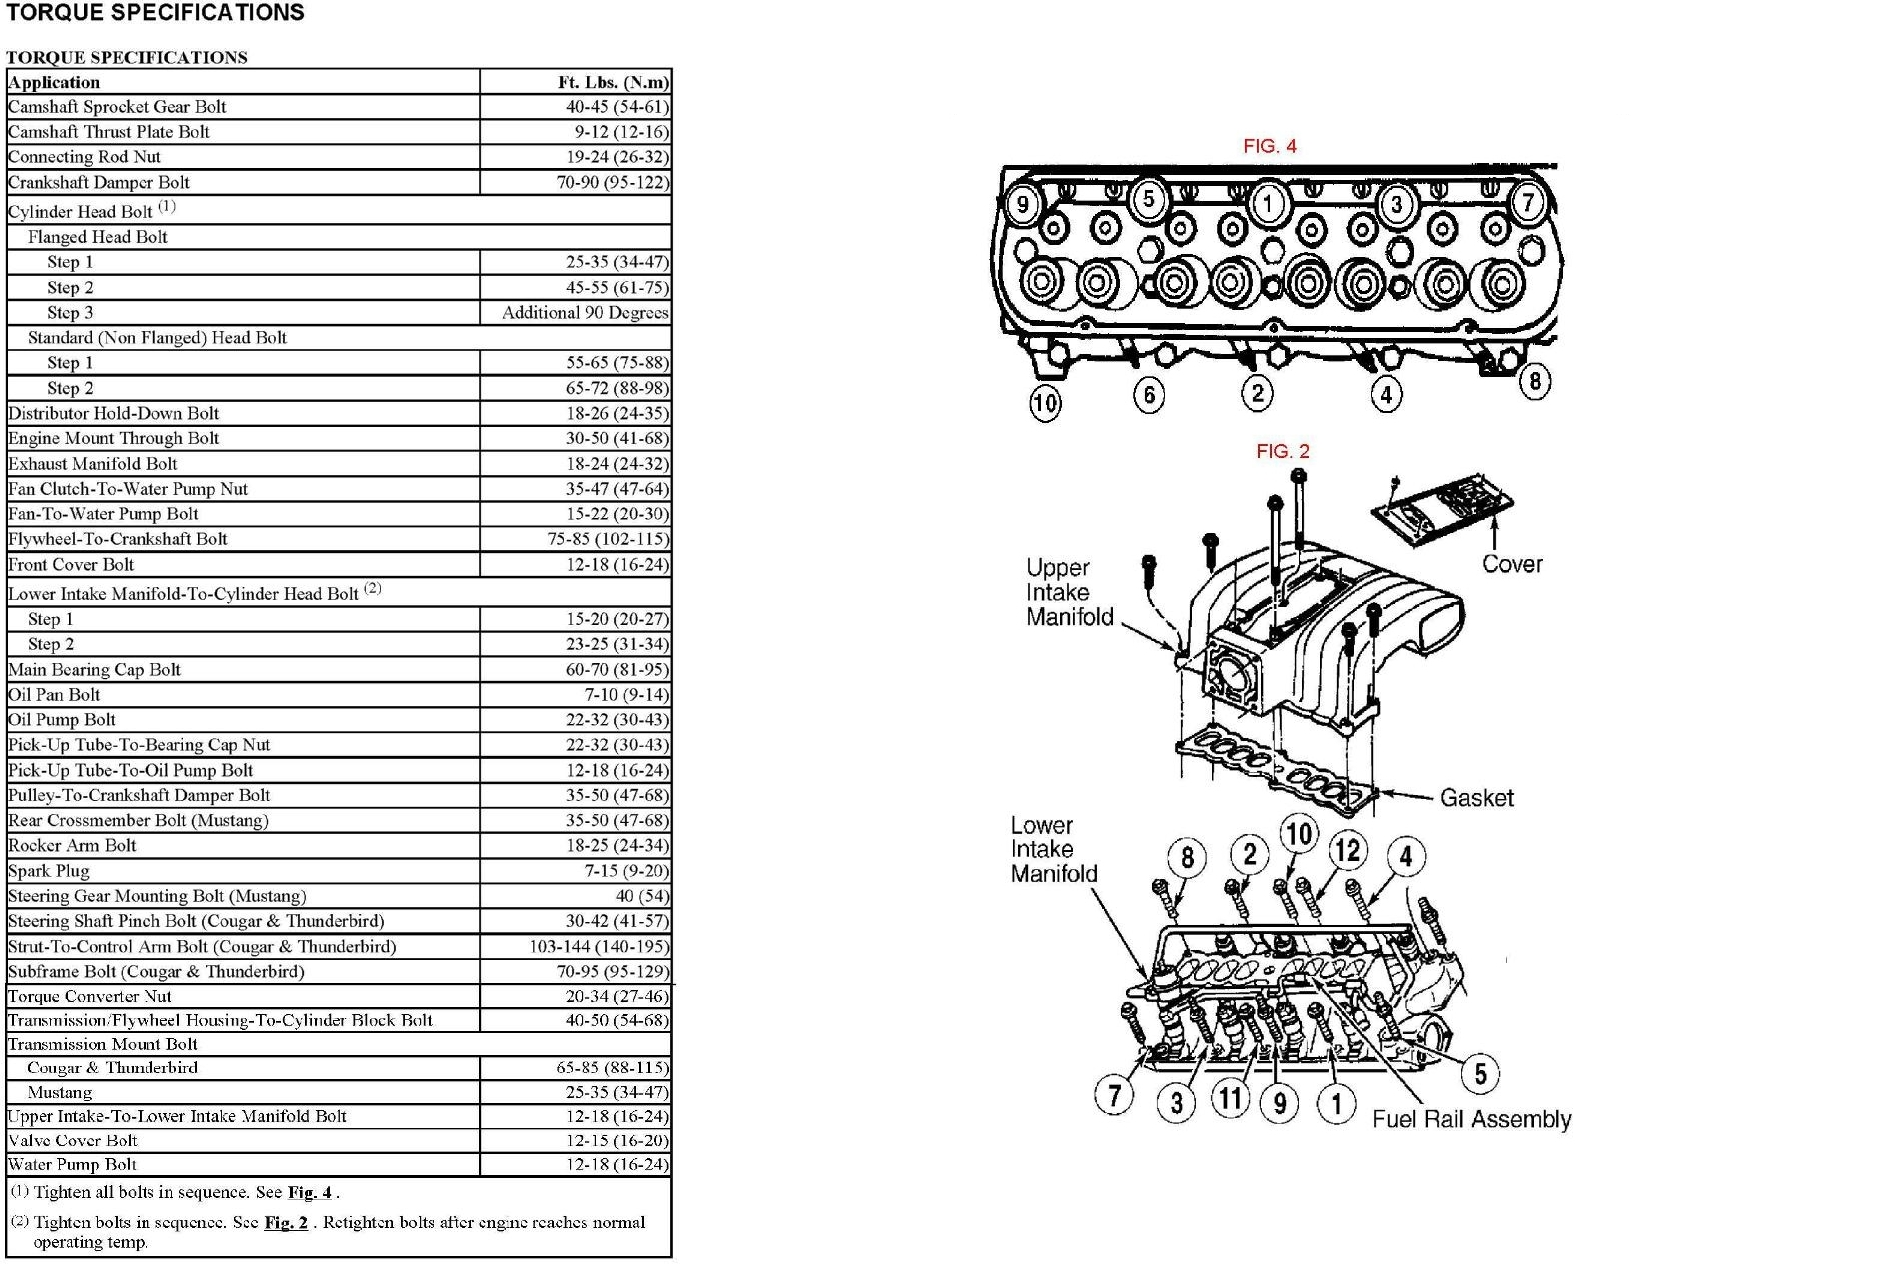 1999 Toyota Camry Suspension Parts Diagram in addition Acura Integra Bumper Parts Diagram together with Mercedes C230 Radio Wiring Diagram further 2006 Acura Tl Fuse Box Under Hood in addition 1994 Acura Legend Engine. on 1997 acura cl transmission